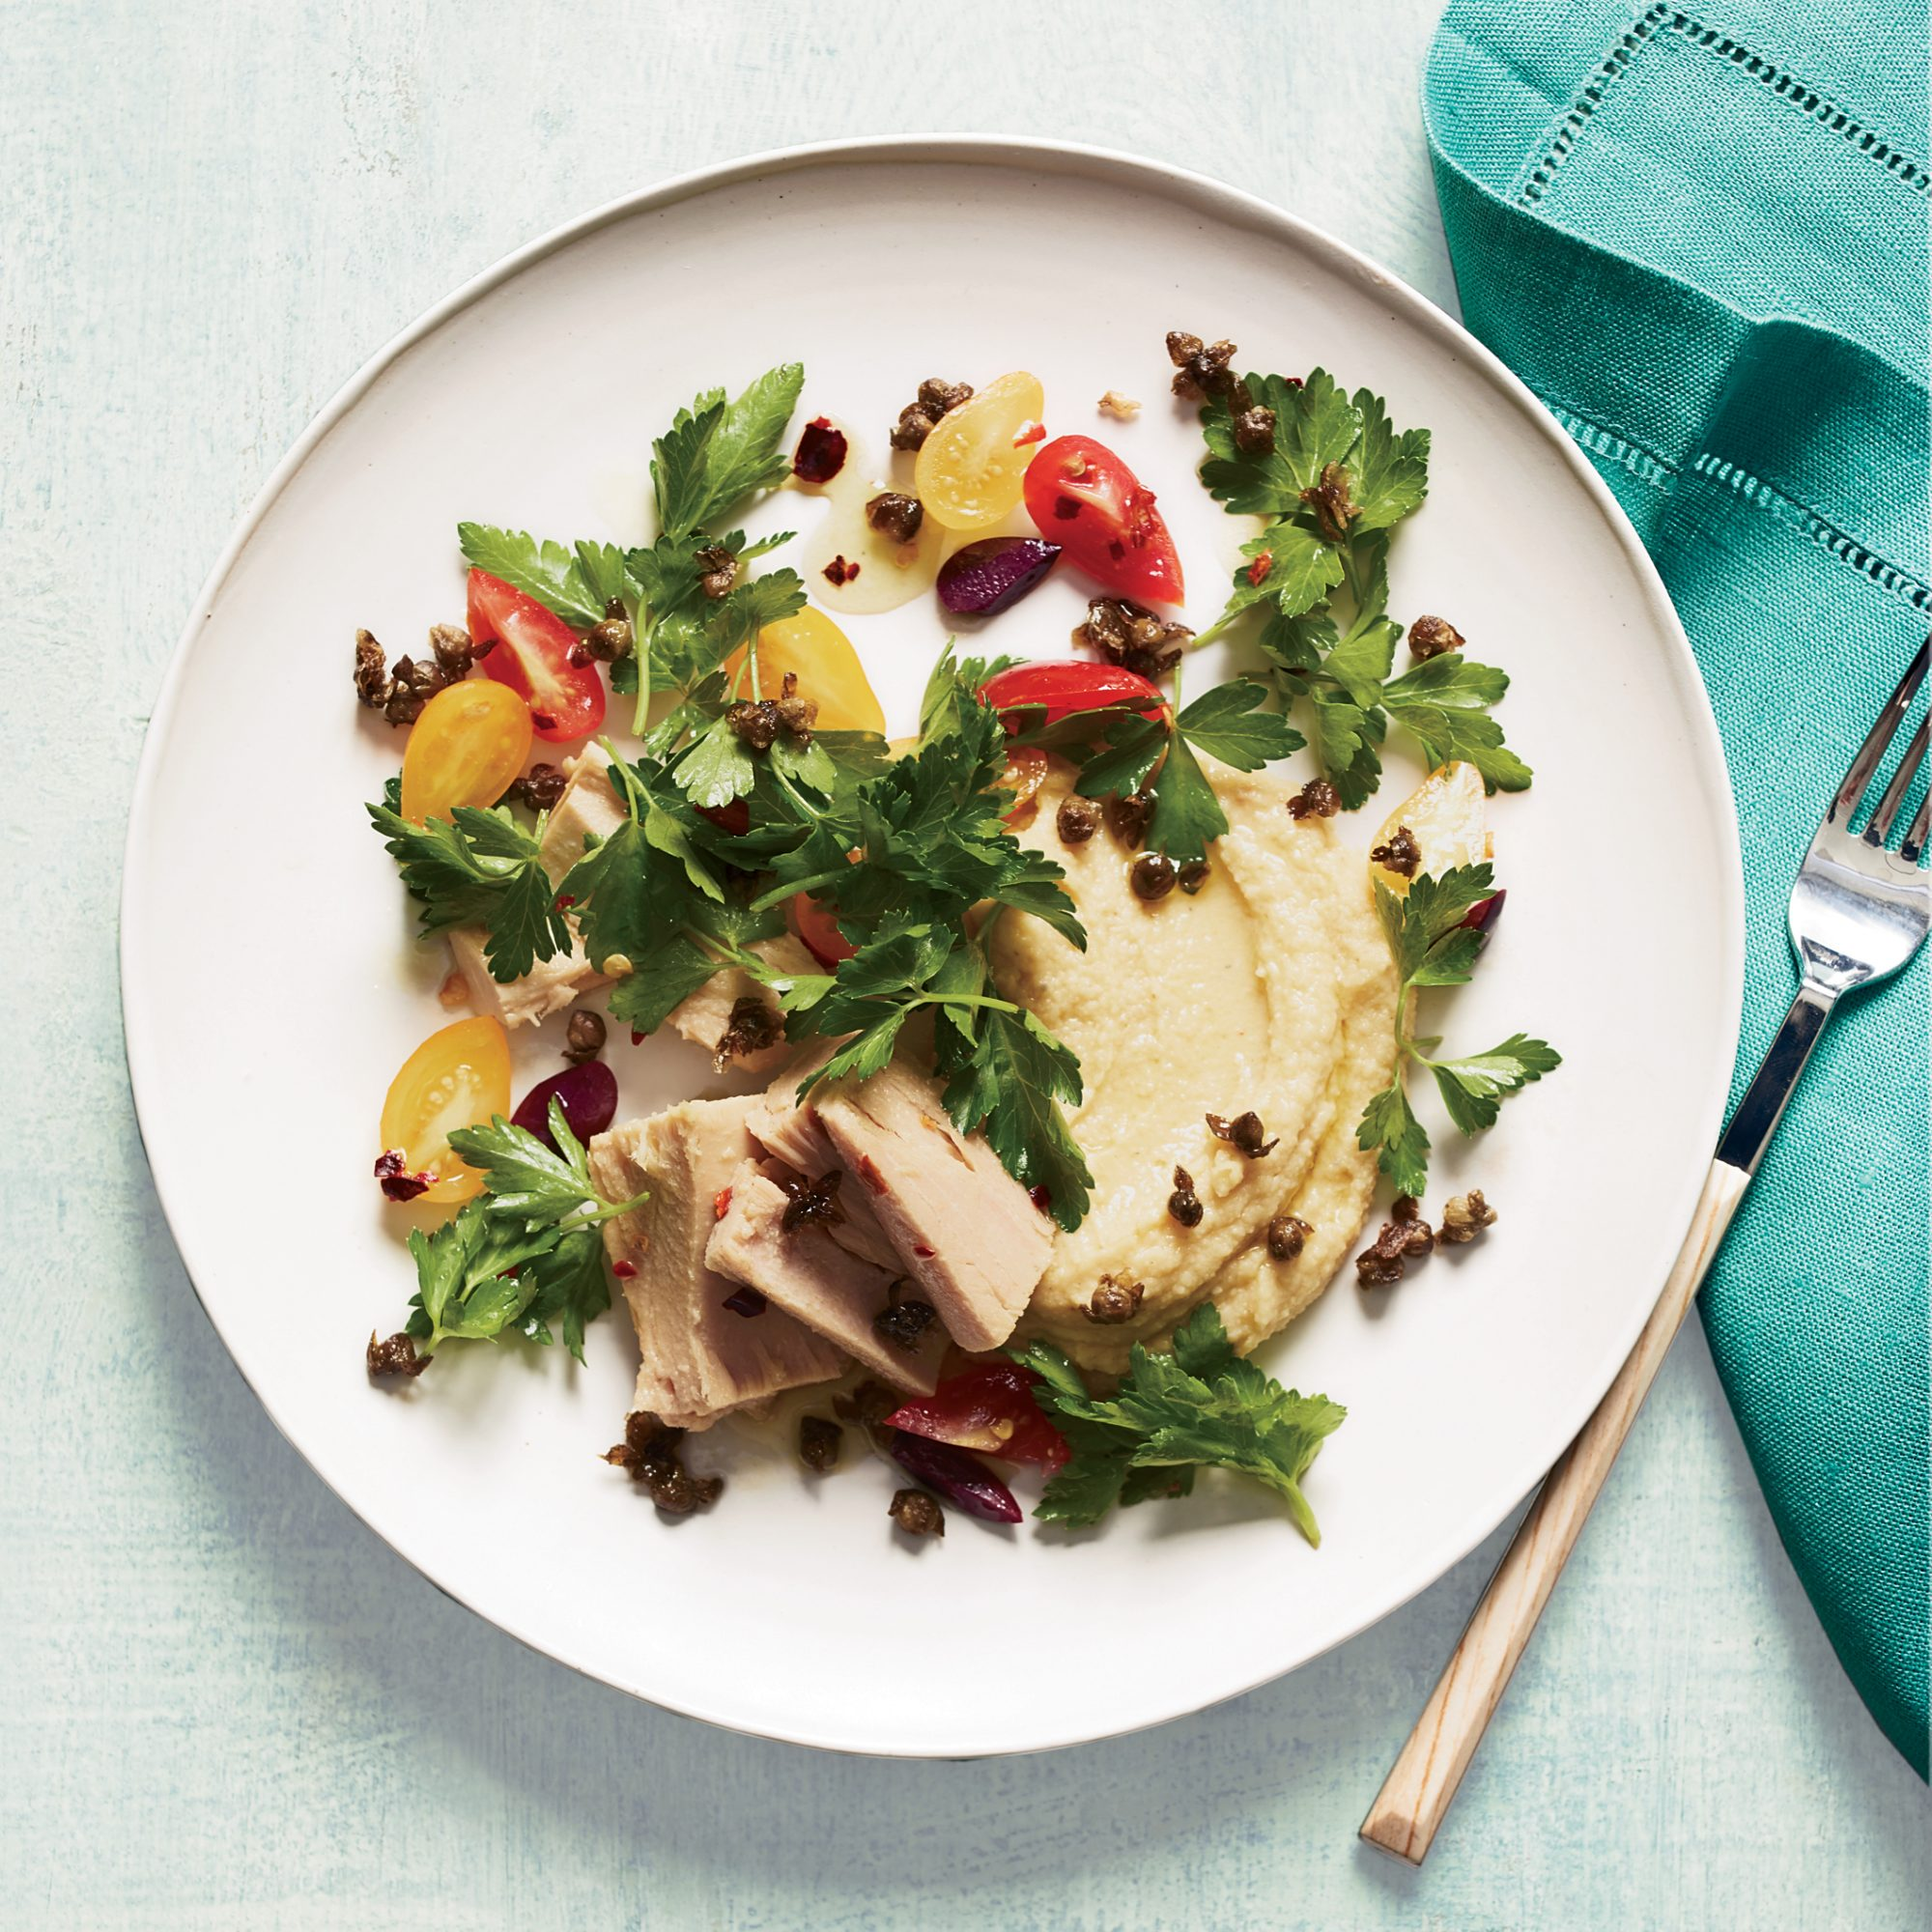 Tuna Salad with Chickpea Puree